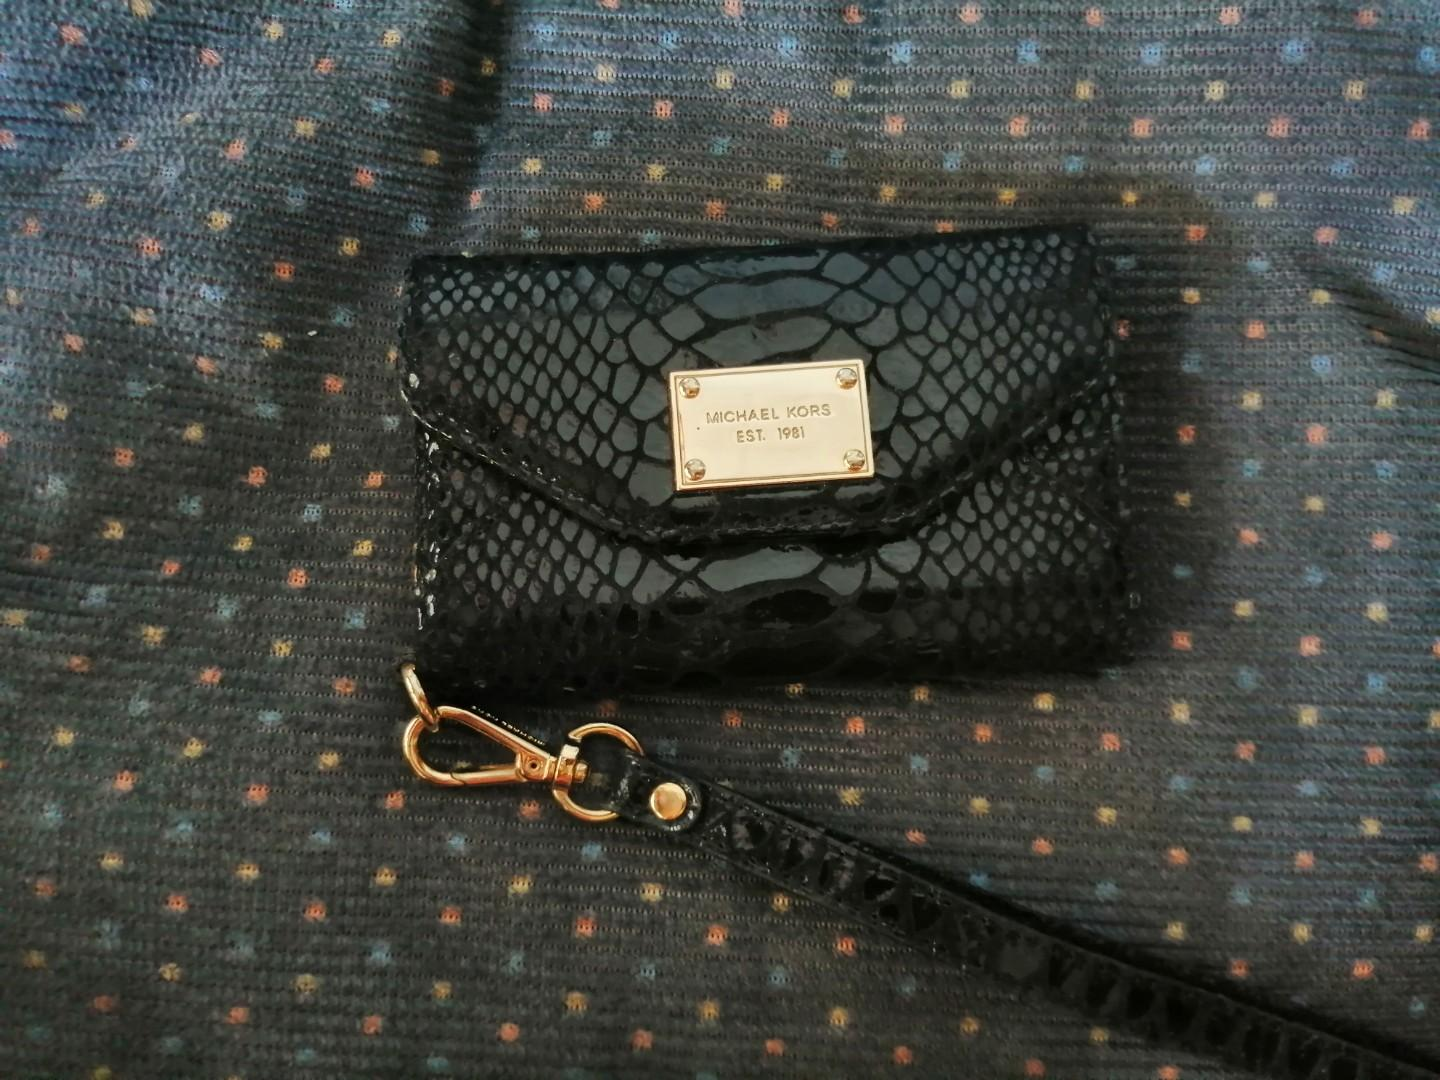 f4f39bade1a4 Michael Kors Black Python Leather iPhone 4/ 4S Wallet Wristlet Case on  Carousell